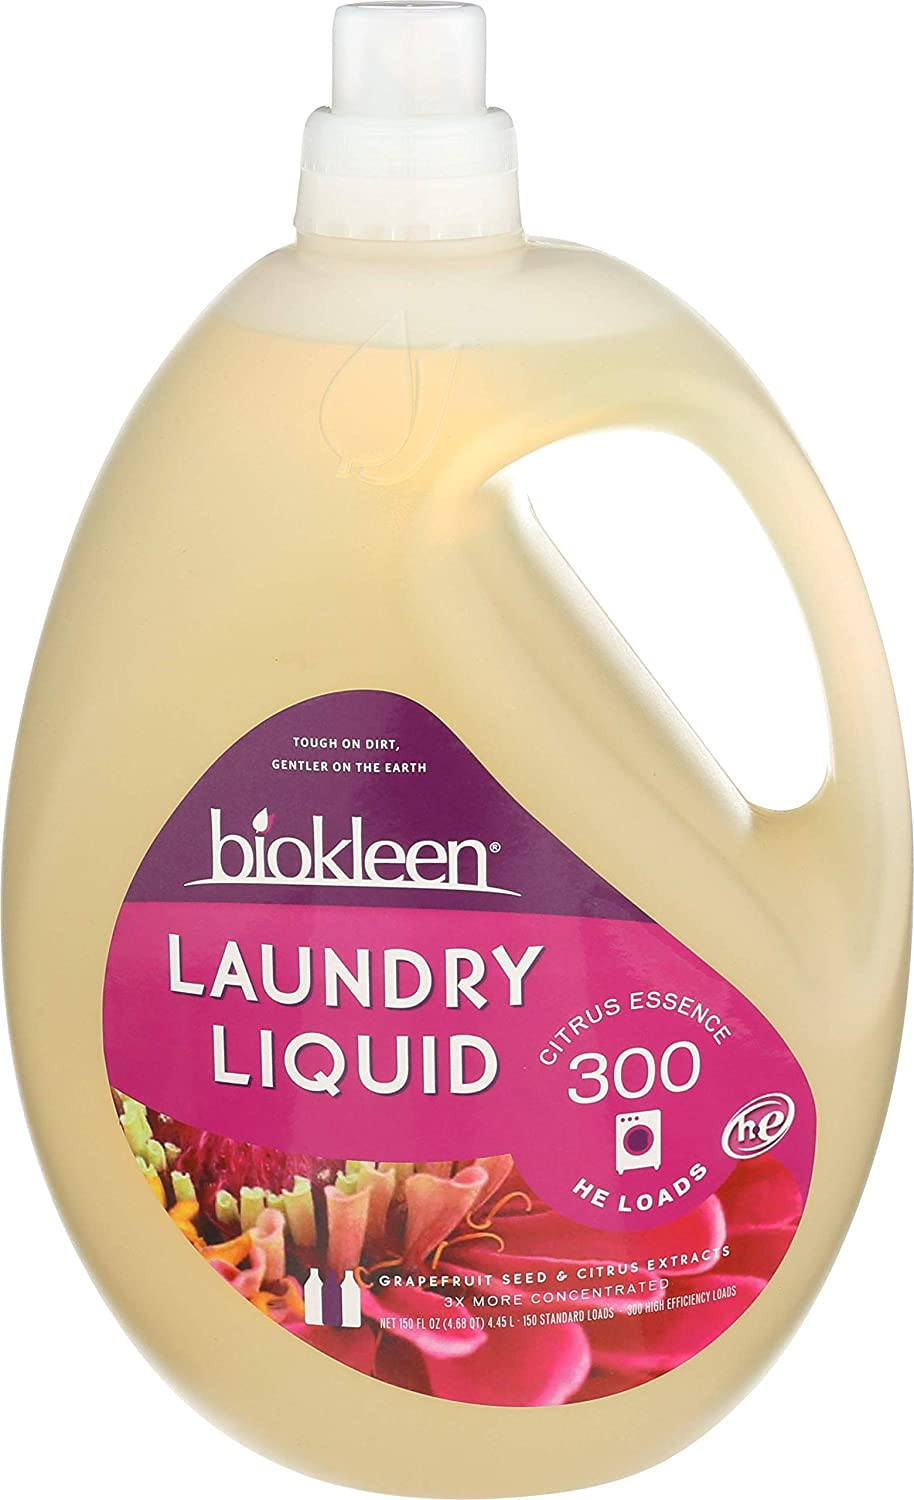 Biokleen Laundry Detergent Liquid, Concentrated, Eco-Friendly, Non-Toxic, Plant-Based, No Artificial Fragrance or Preservatives, 150 Fl Oz (Pack of 3)